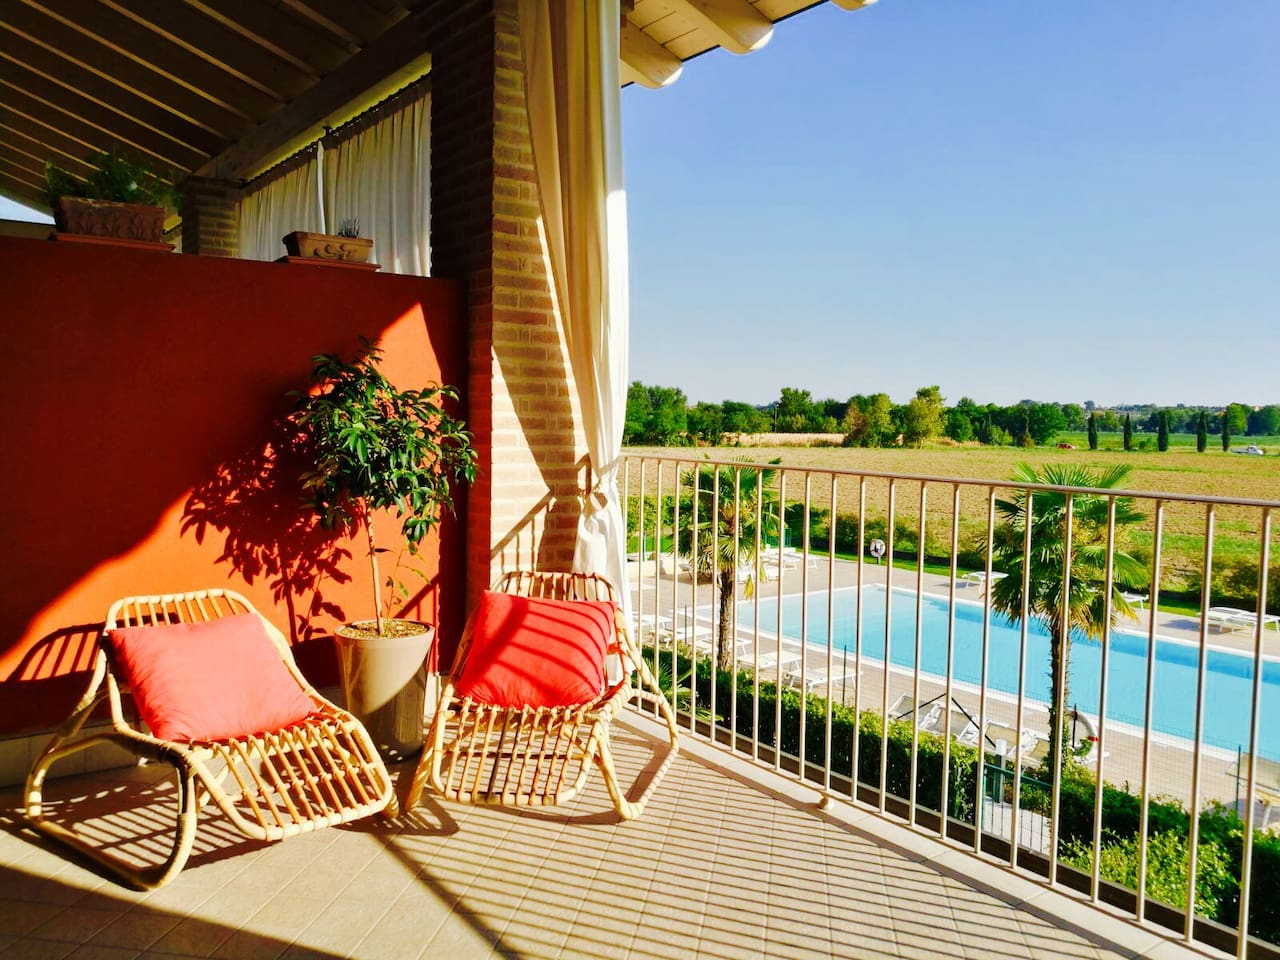 Our terrace pool and nature view